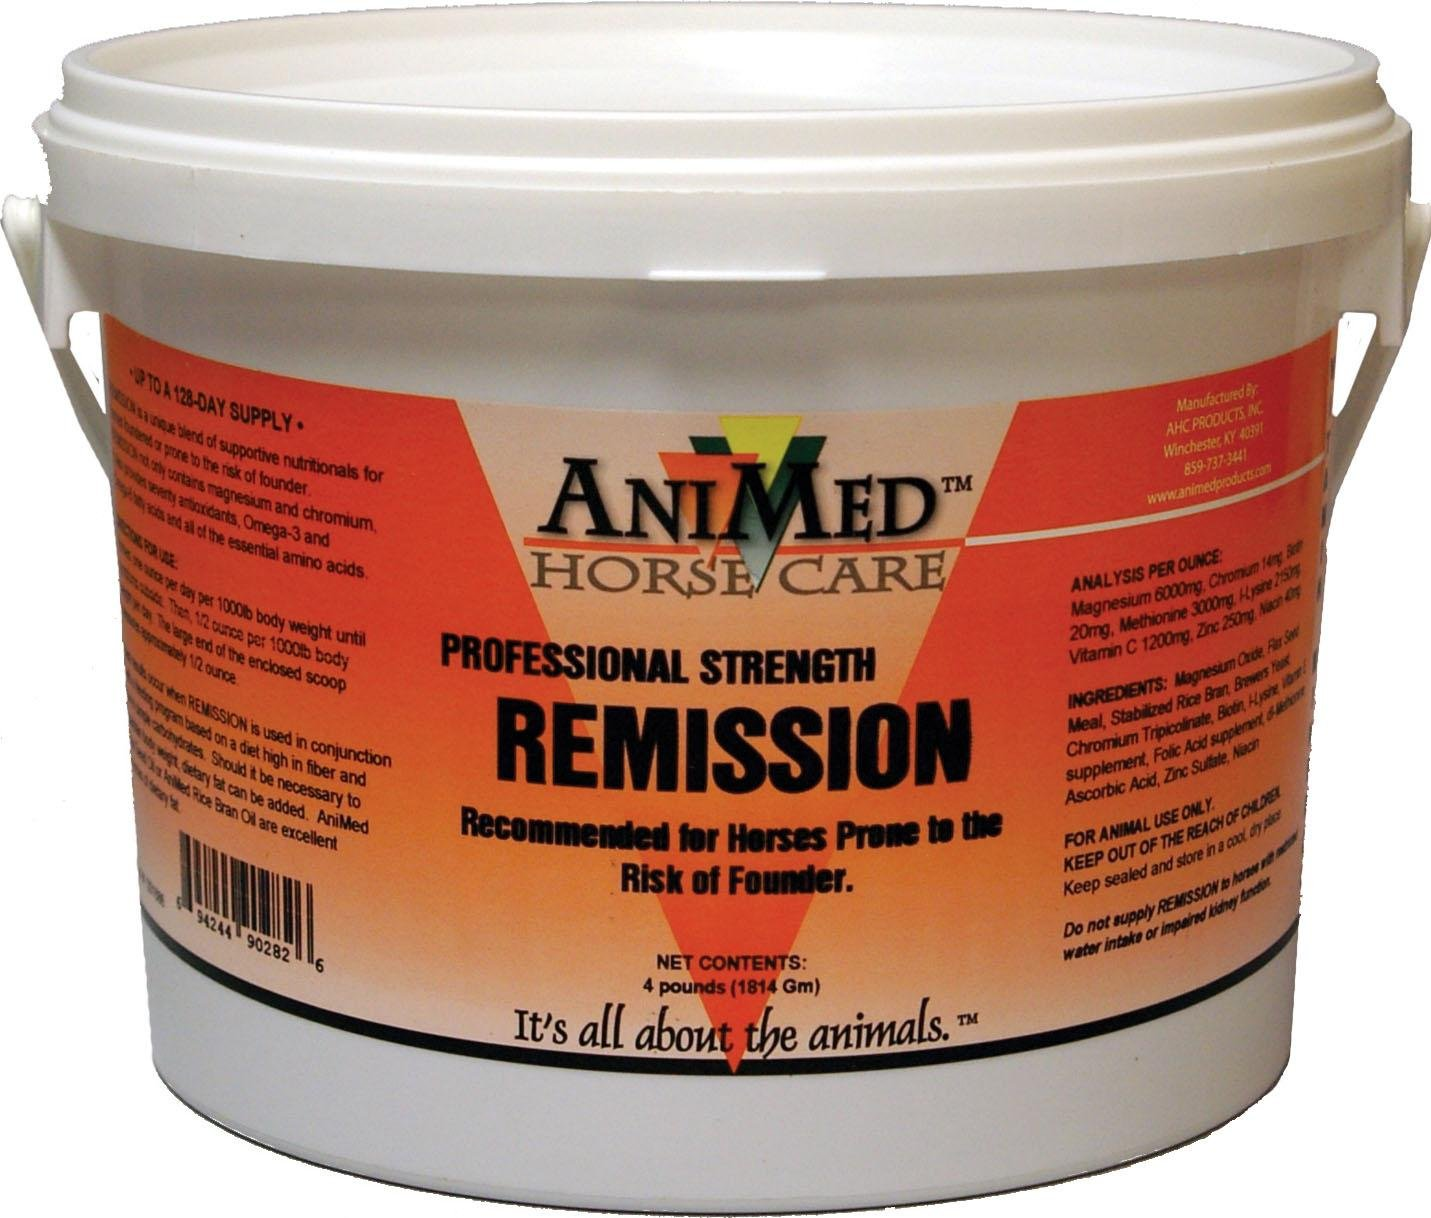 ANIMED D Remission Founder Treatment for Horses 4 Pound